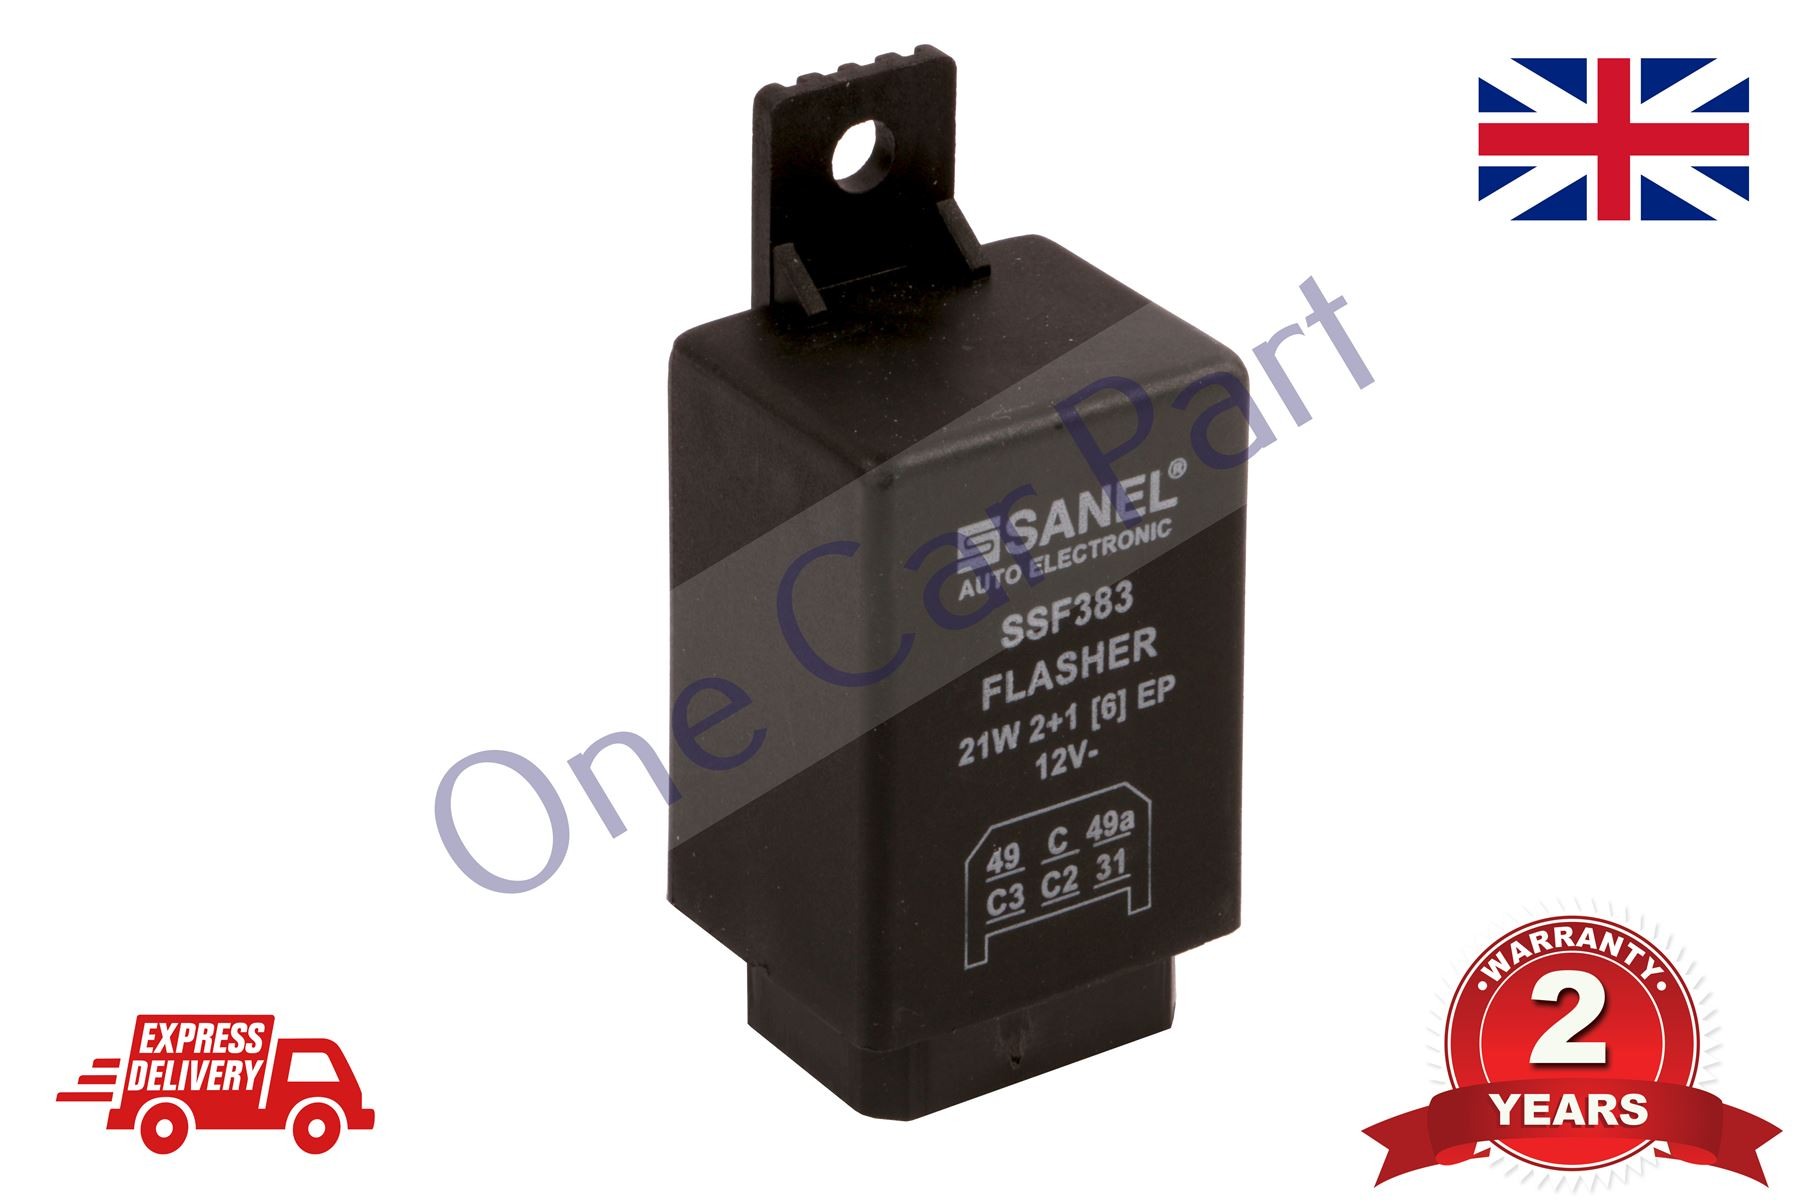 12v 6 Pin Flasher Indicator Relay Unit New Holland Ford Tractor Oe Vintage Lawn Wiring Diagram Quality